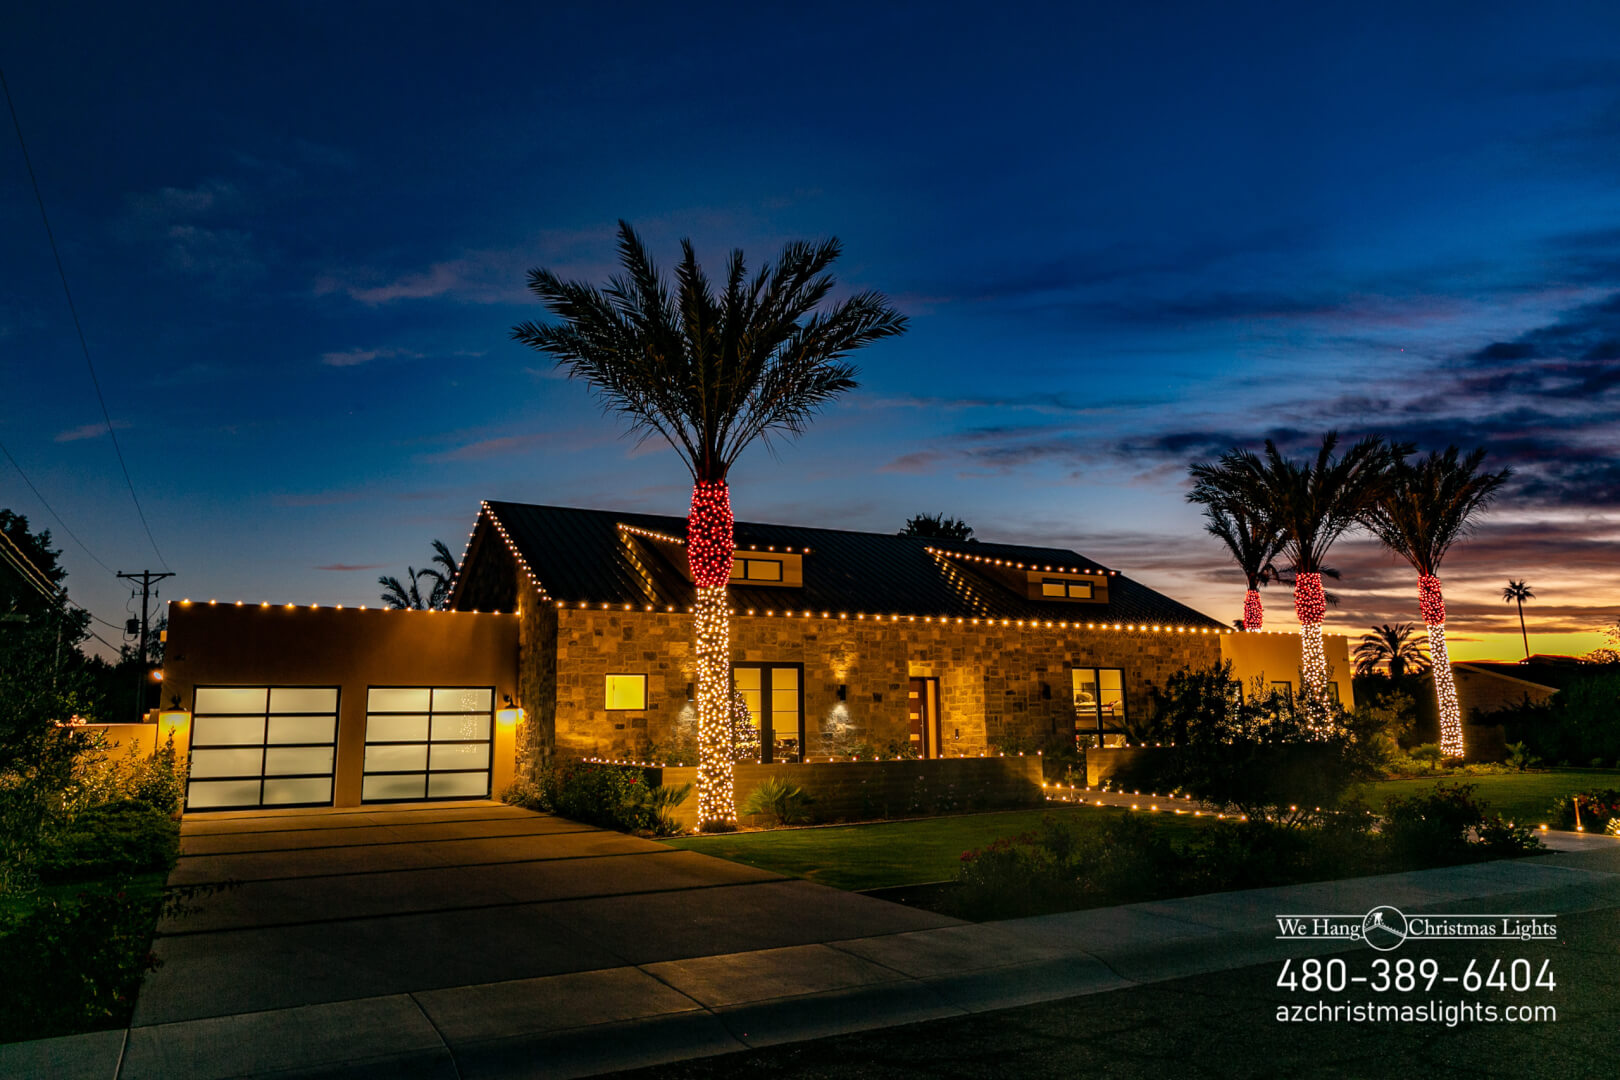 Christmas Light Installation in Phoenix, AZ | We Hang Christmas Lights LLC